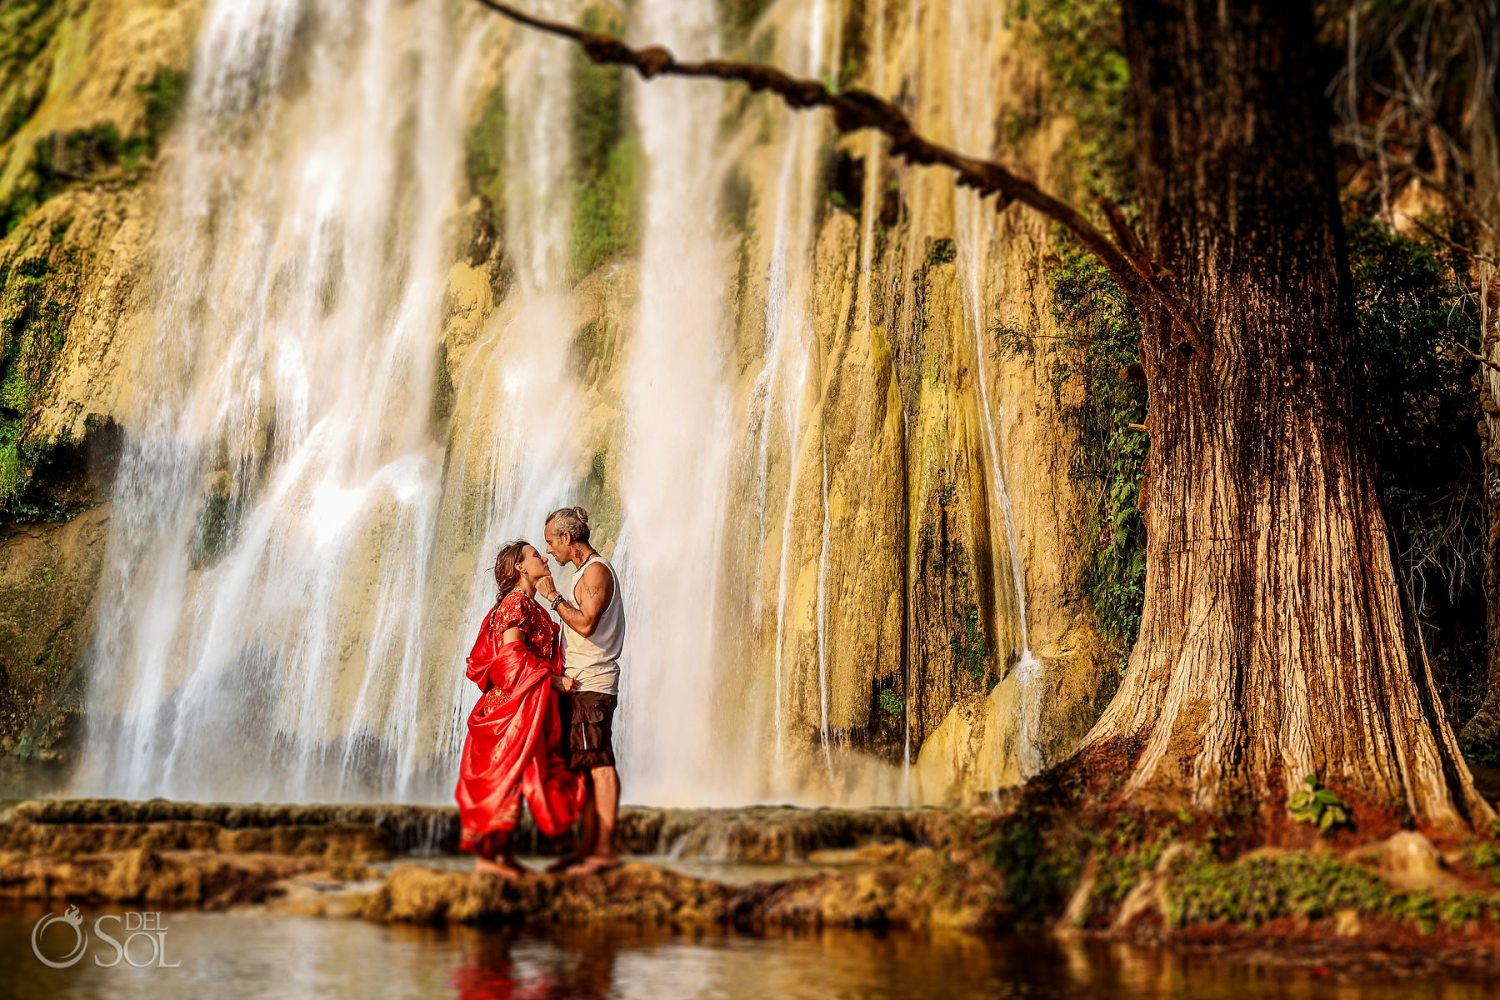 Elopement ideas for adventurous Couples waterfall Ceremony